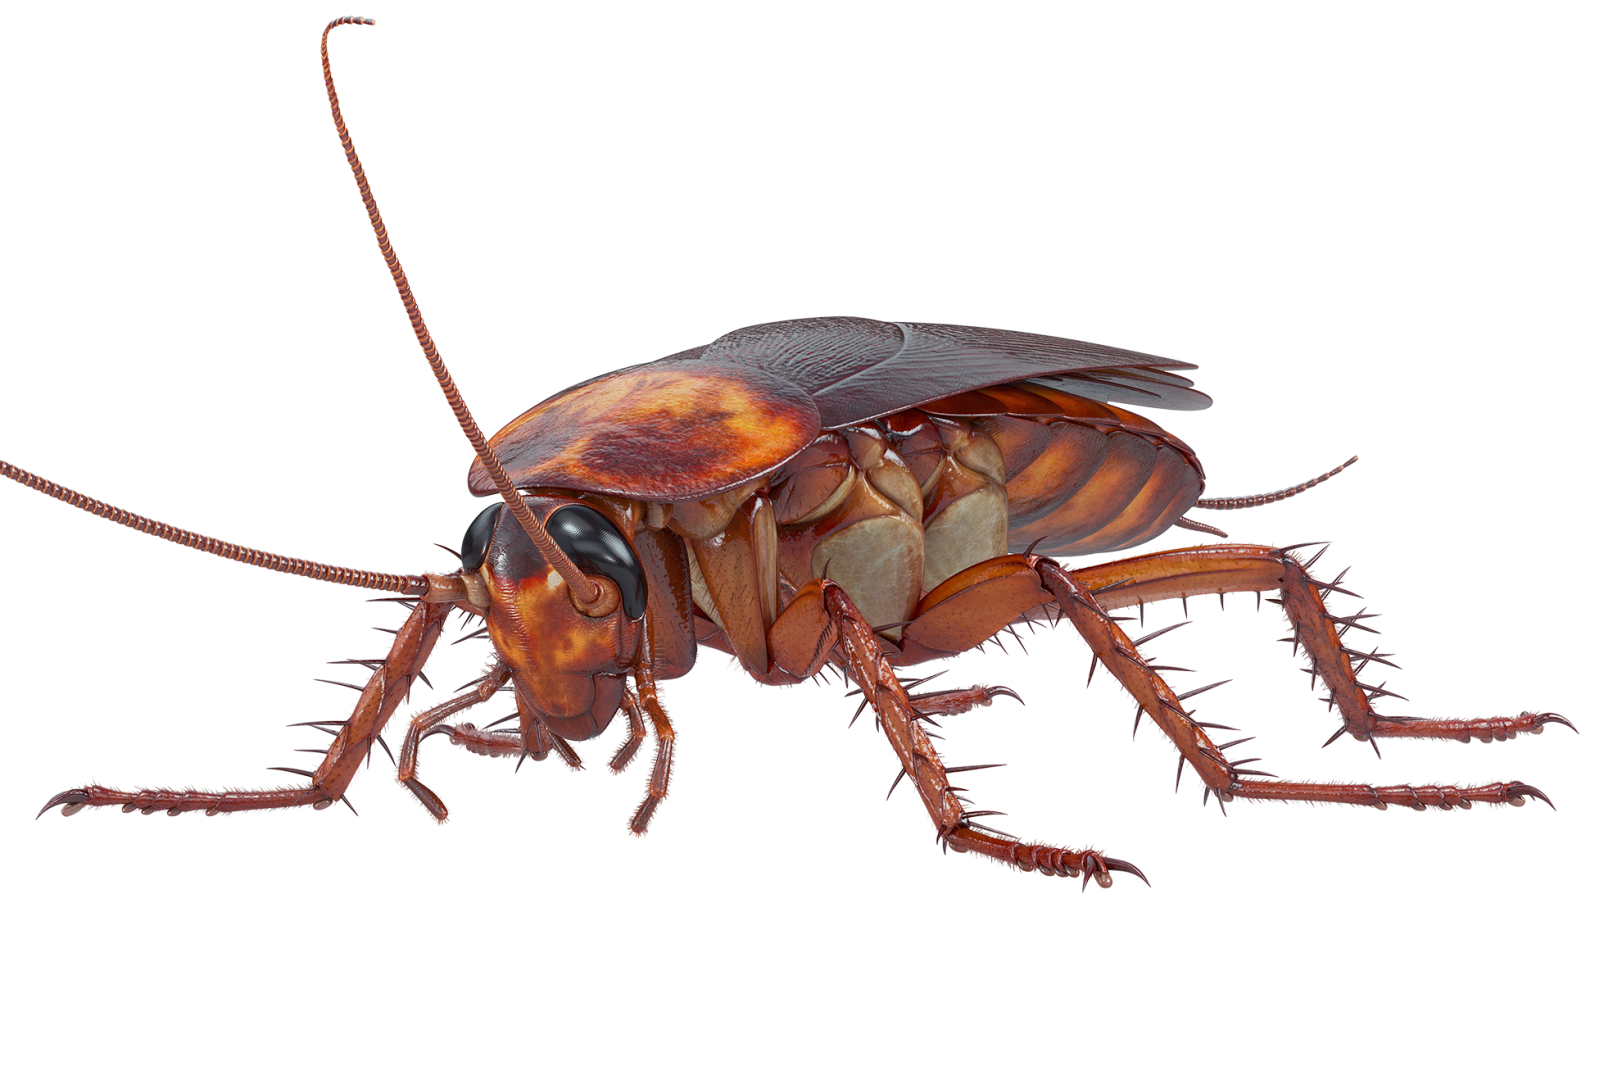 A standard cockroach. Roach control issues are a leading pest problem.